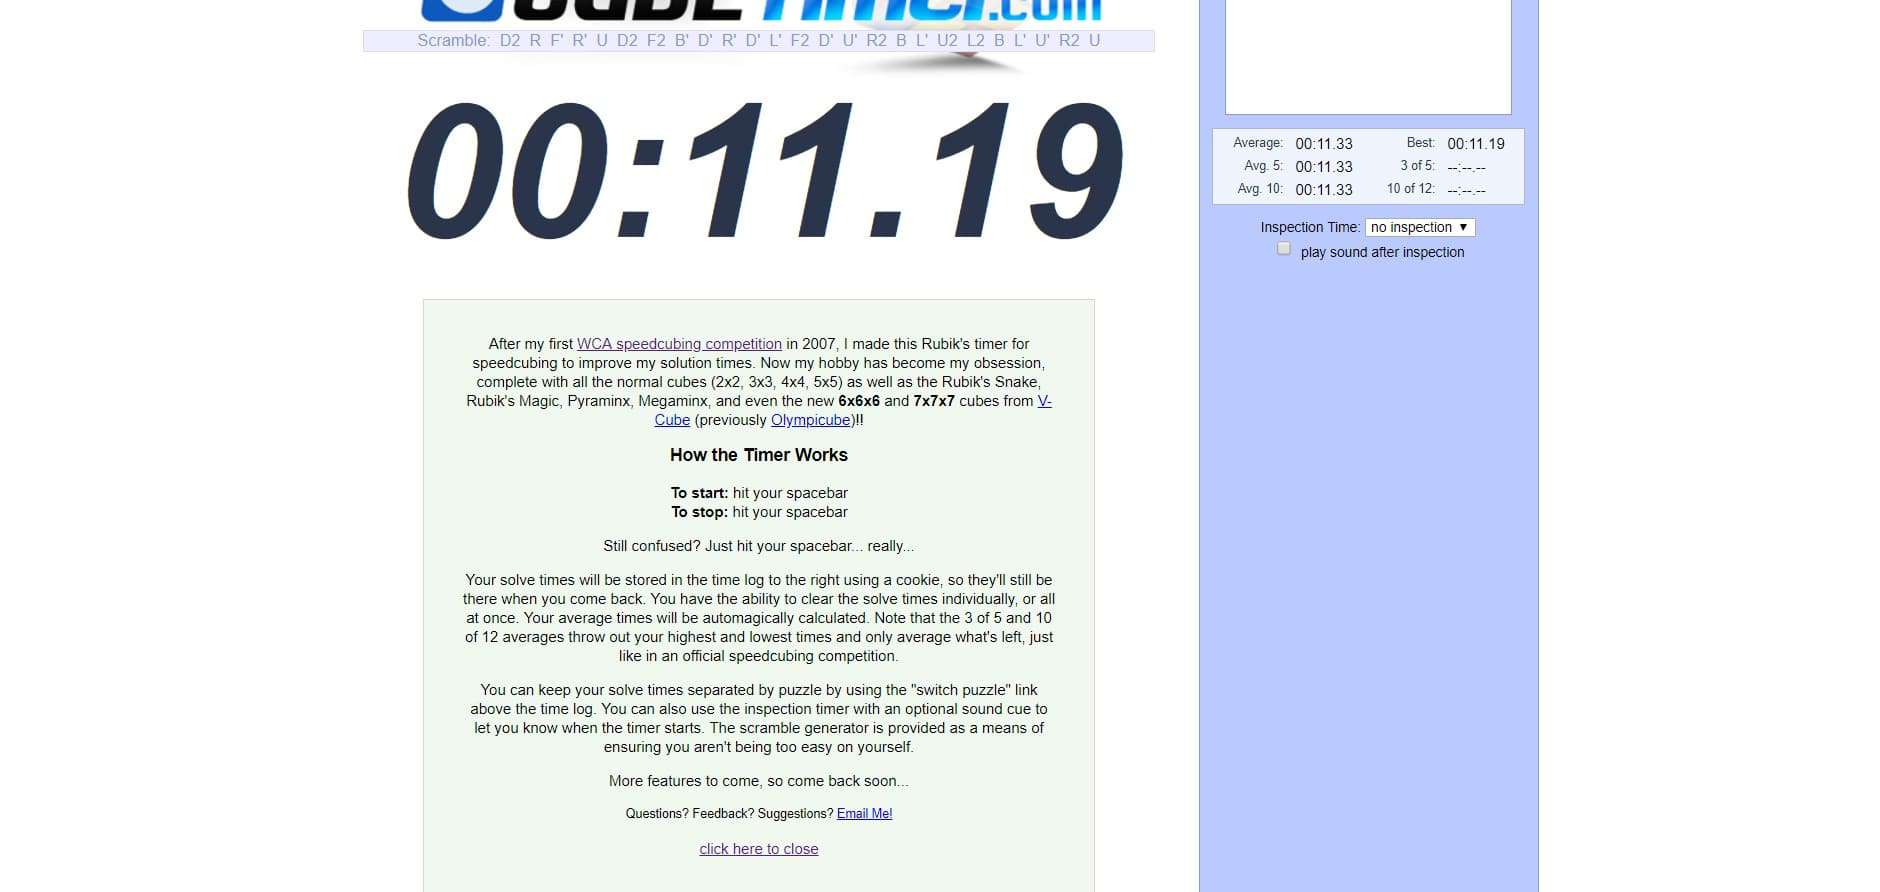 23 Awesome Rubik's Cube Timers - ULTIMATE Cubing Stopwatch Guide